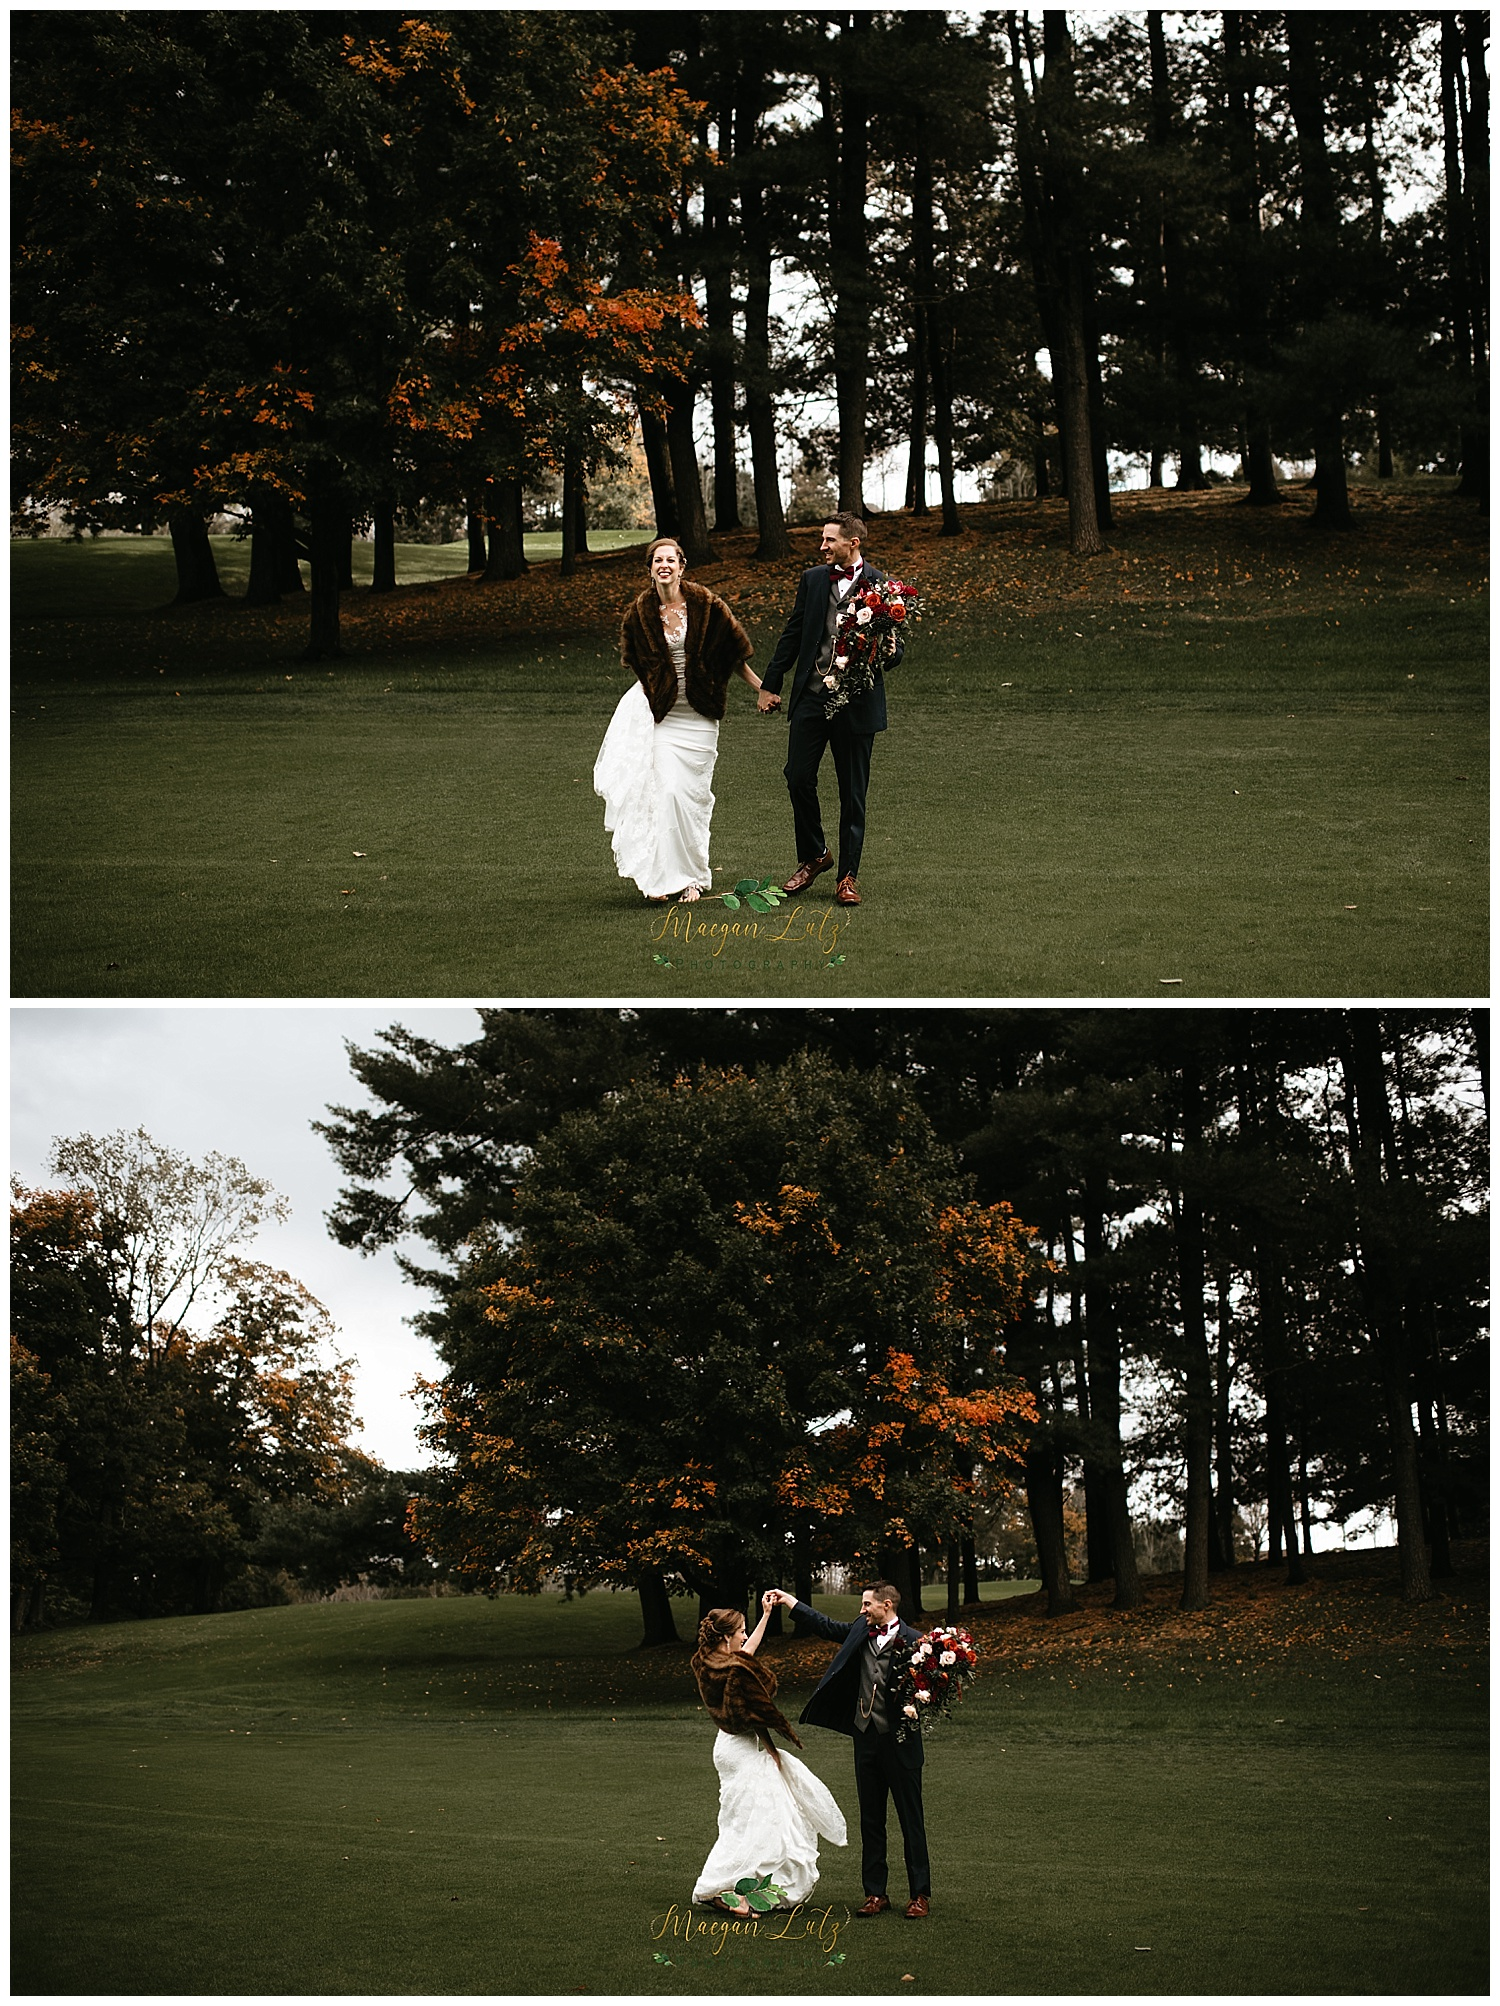 NEPA-wedding-photographer-at-Glen-Oak-Country-Club-Clarks-Summit-PA_0030.jpg